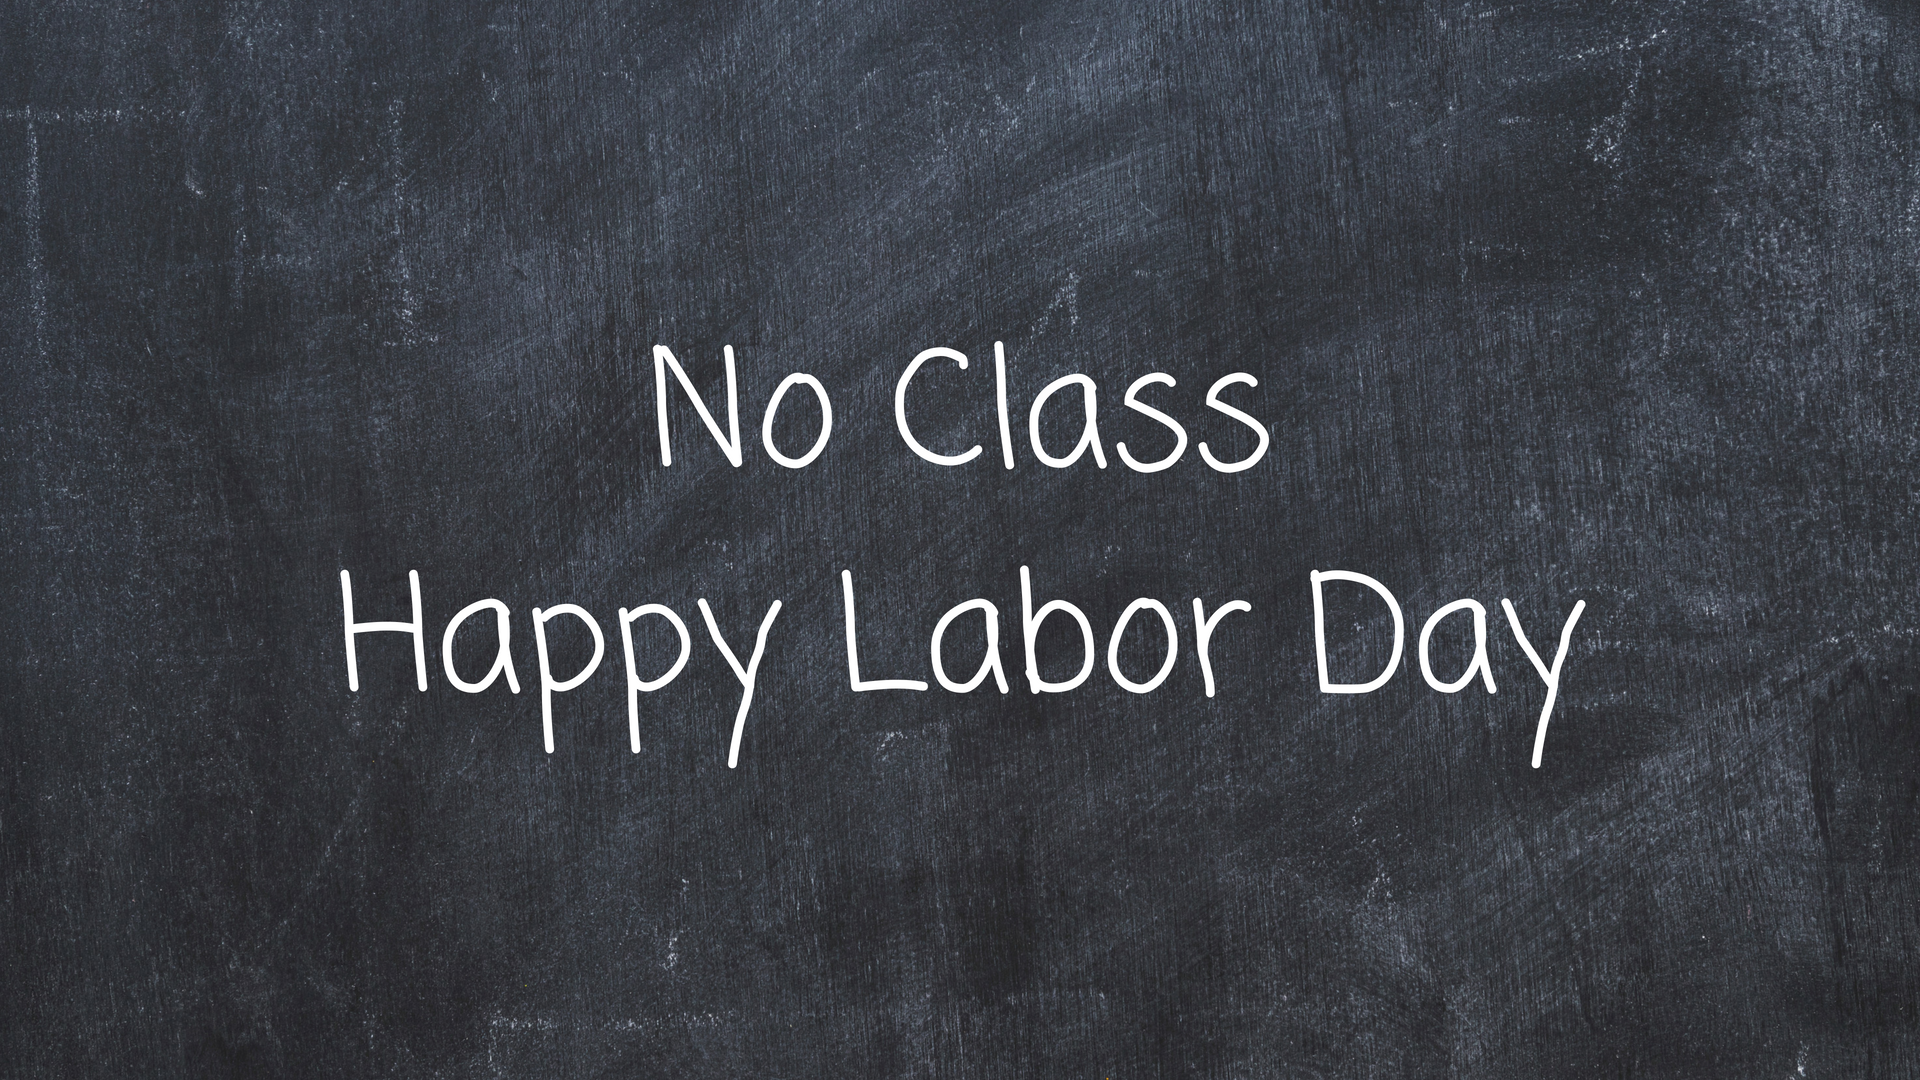 No Class - Happy Labor Day